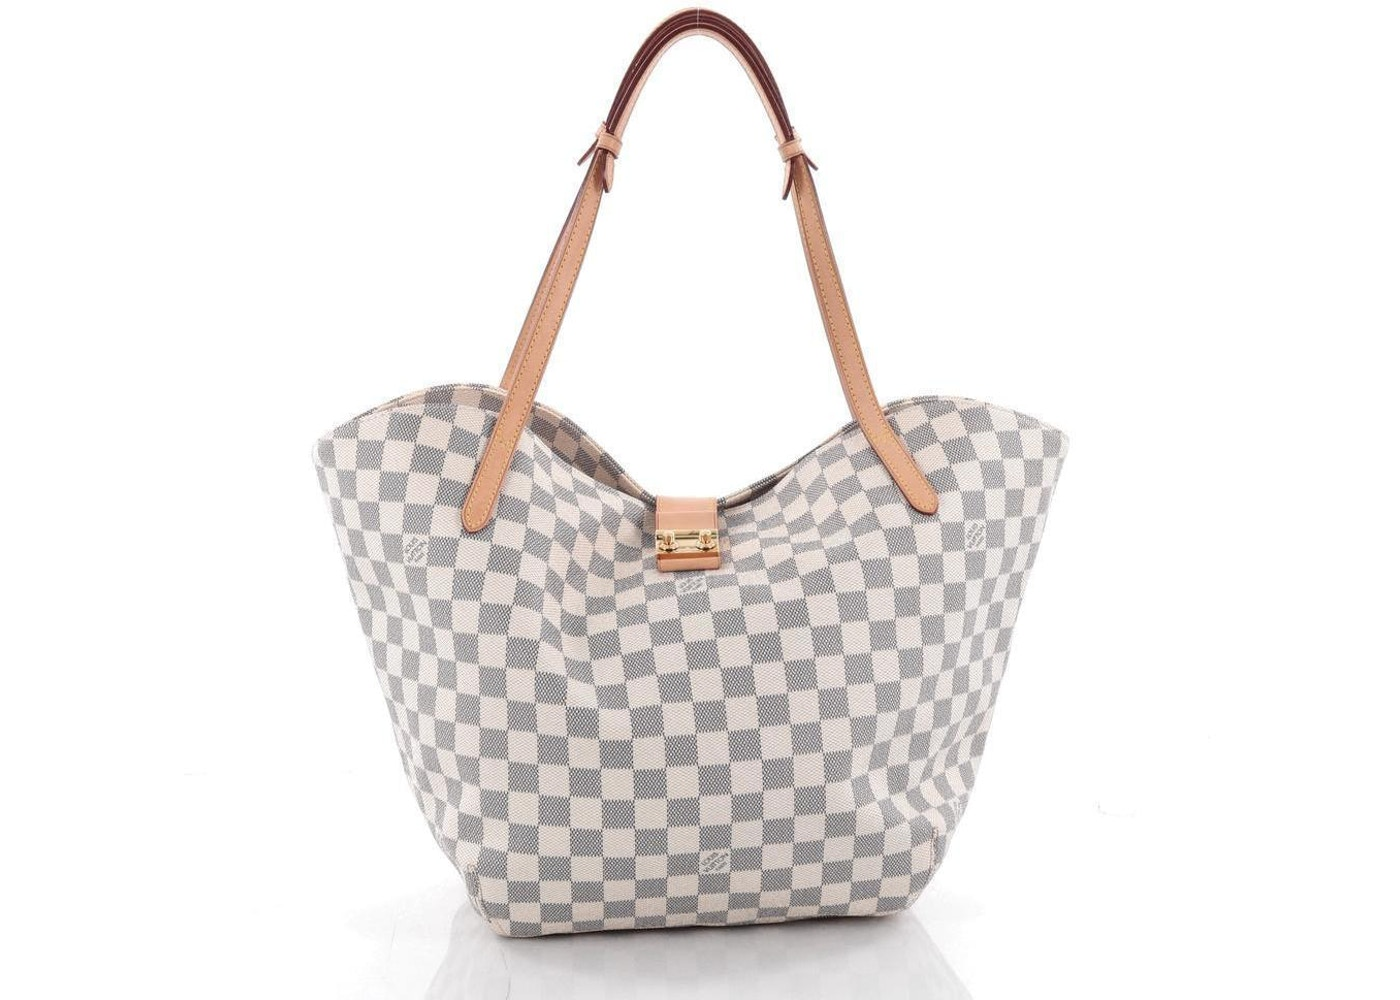 8bf83ae073a Louis Vuitton Handbag Salina Damier Azur GM White/Blue